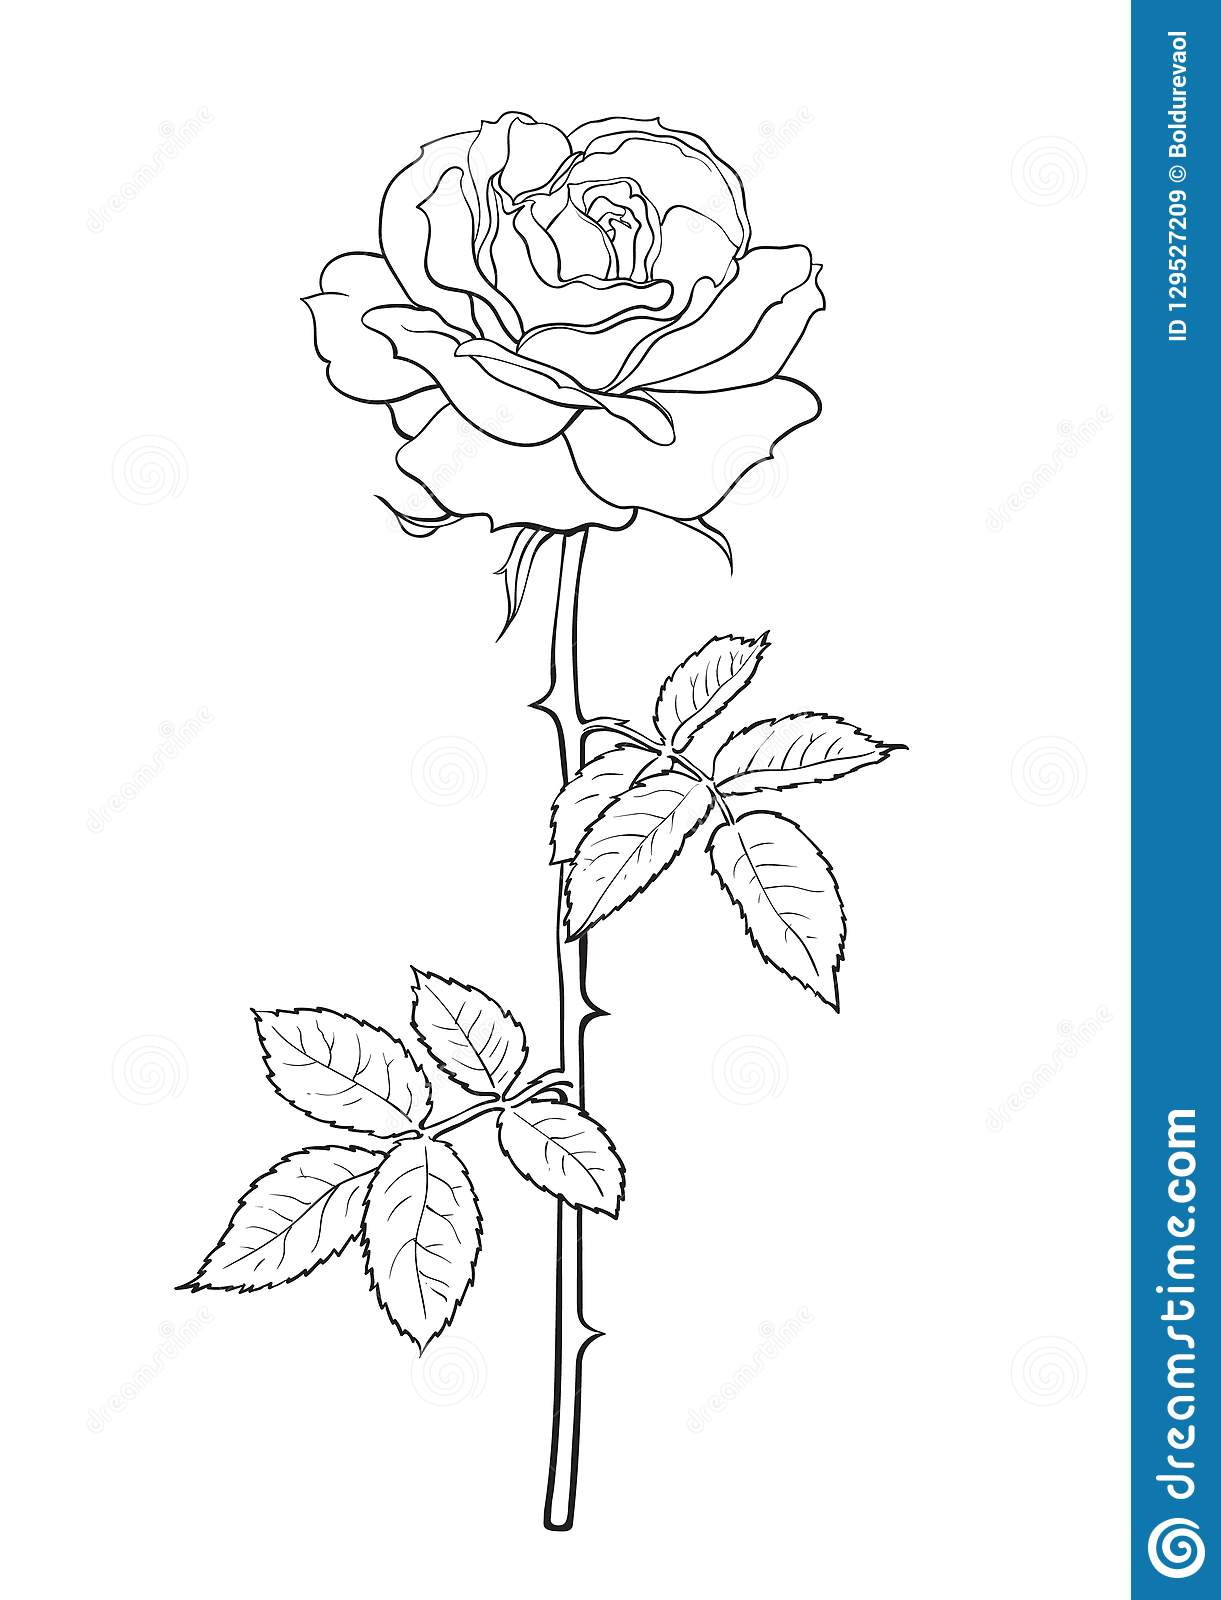 Black And White Rose Flower With Leaves And Stem Decorative Element